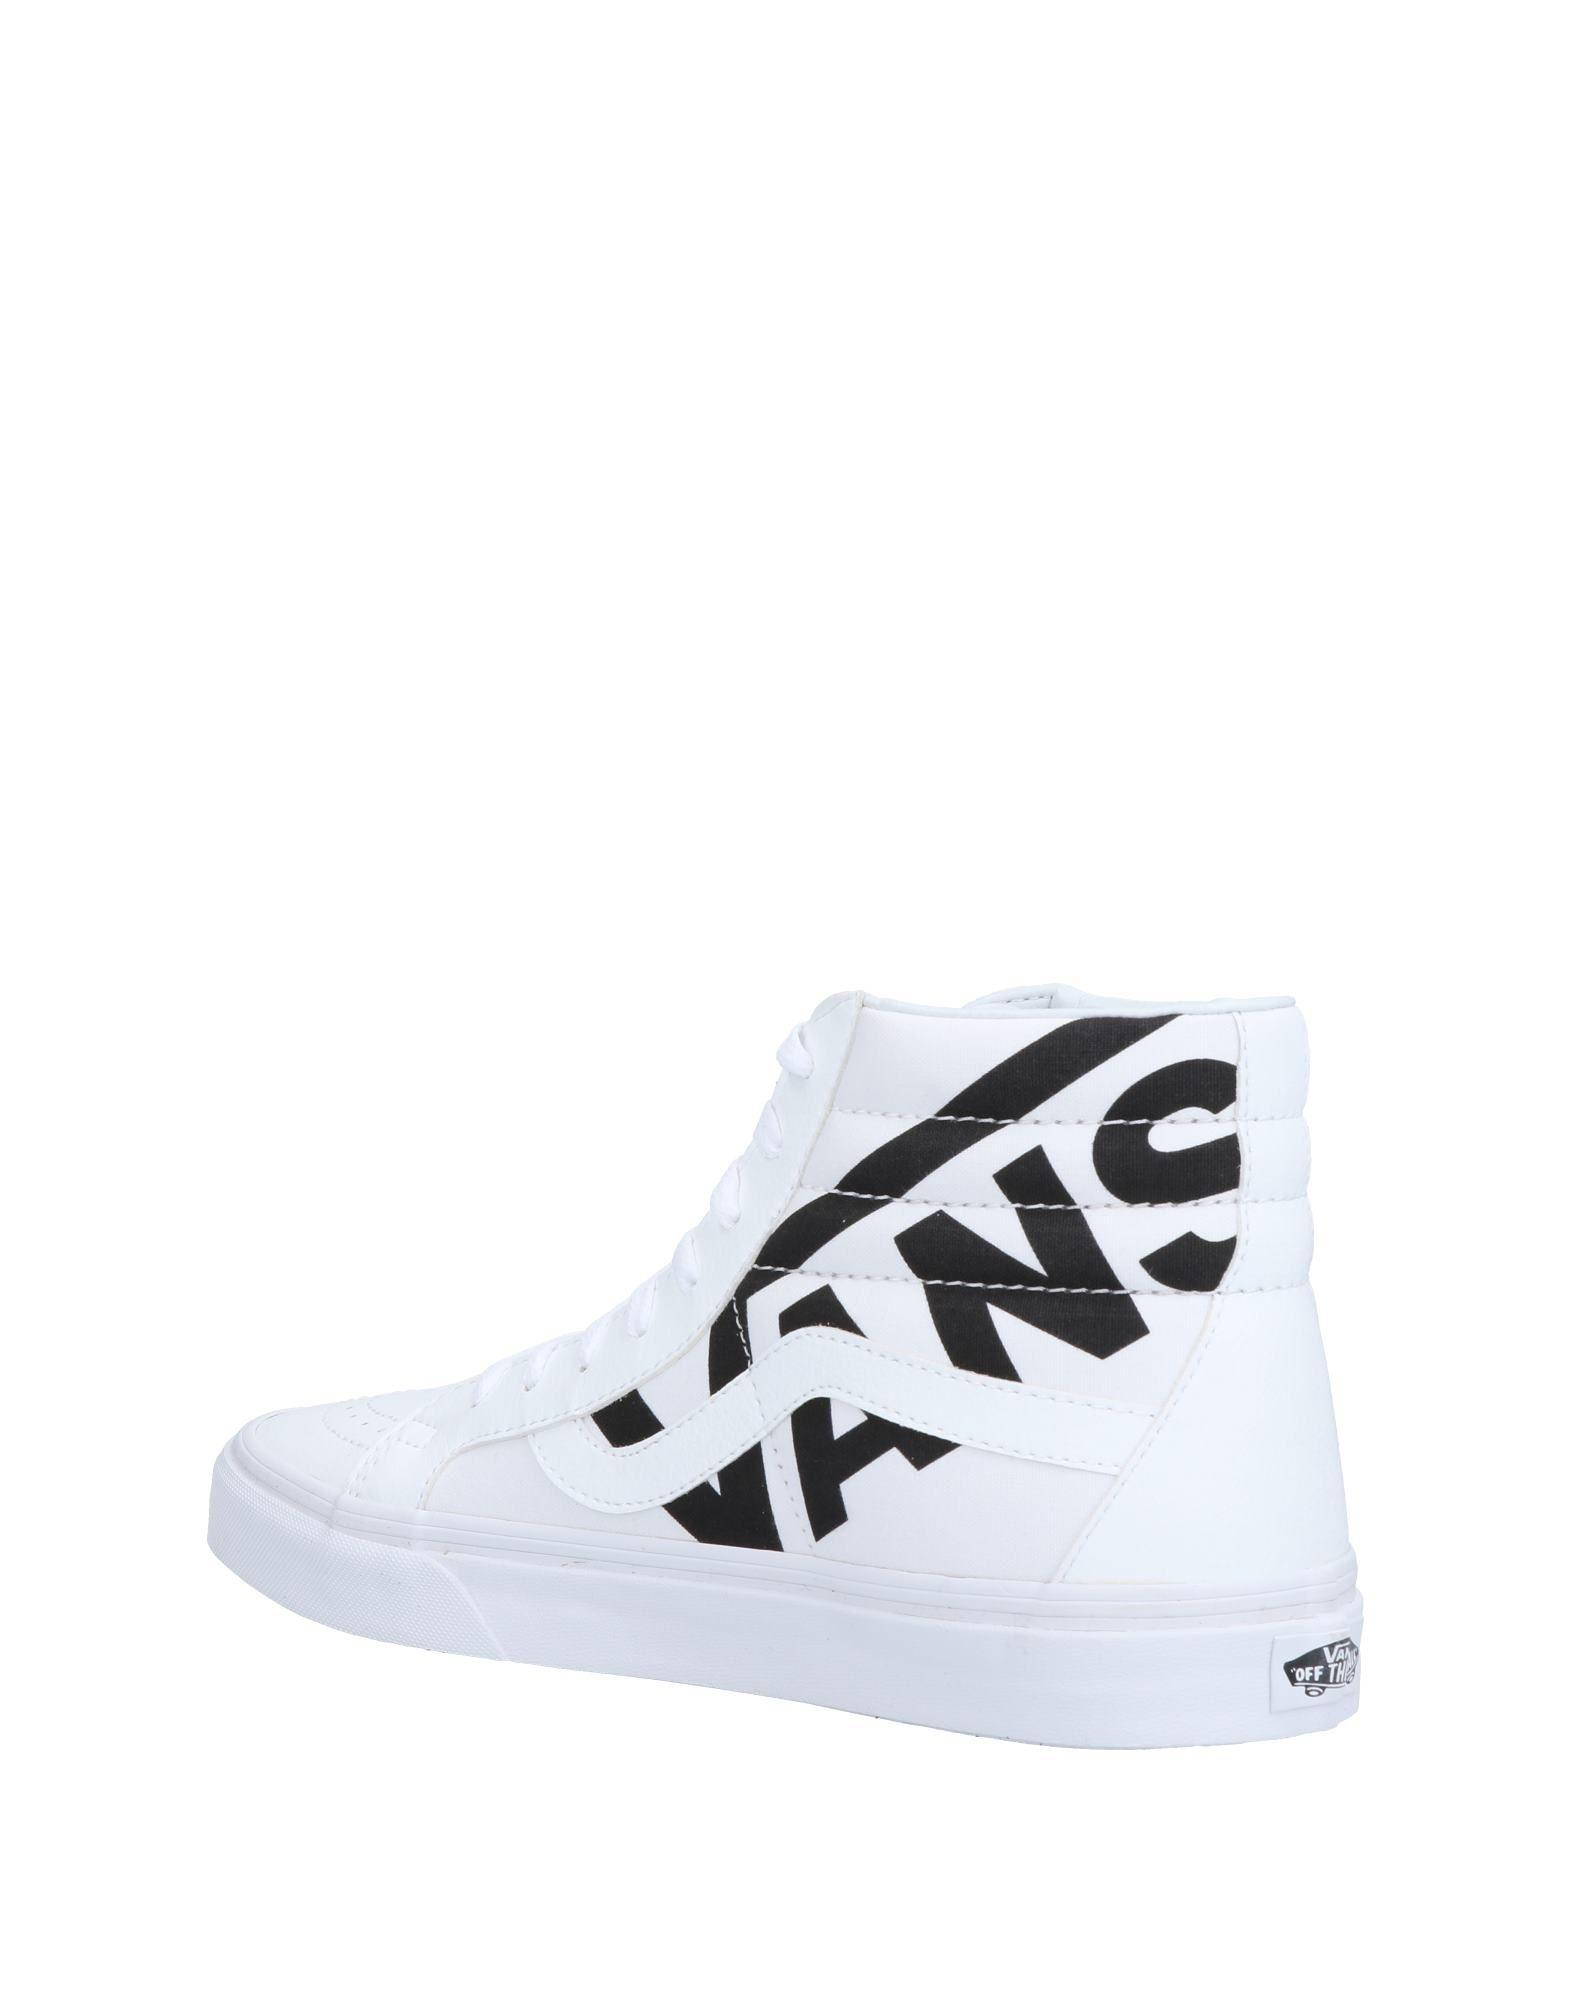 affeefbf11160e Lyst - Vans High-tops   Sneakers in White for Men - Save 47%